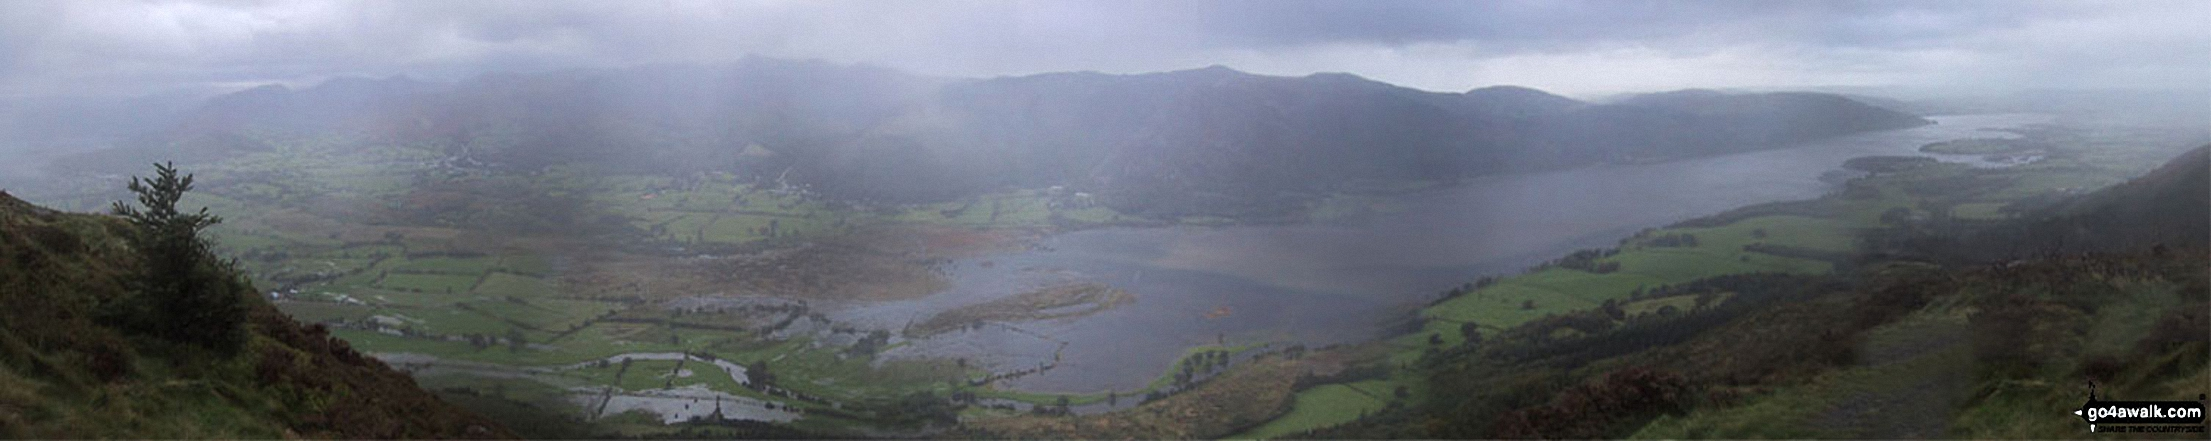 *Bassenthwaite Lake from Dodd (Skiddaw)